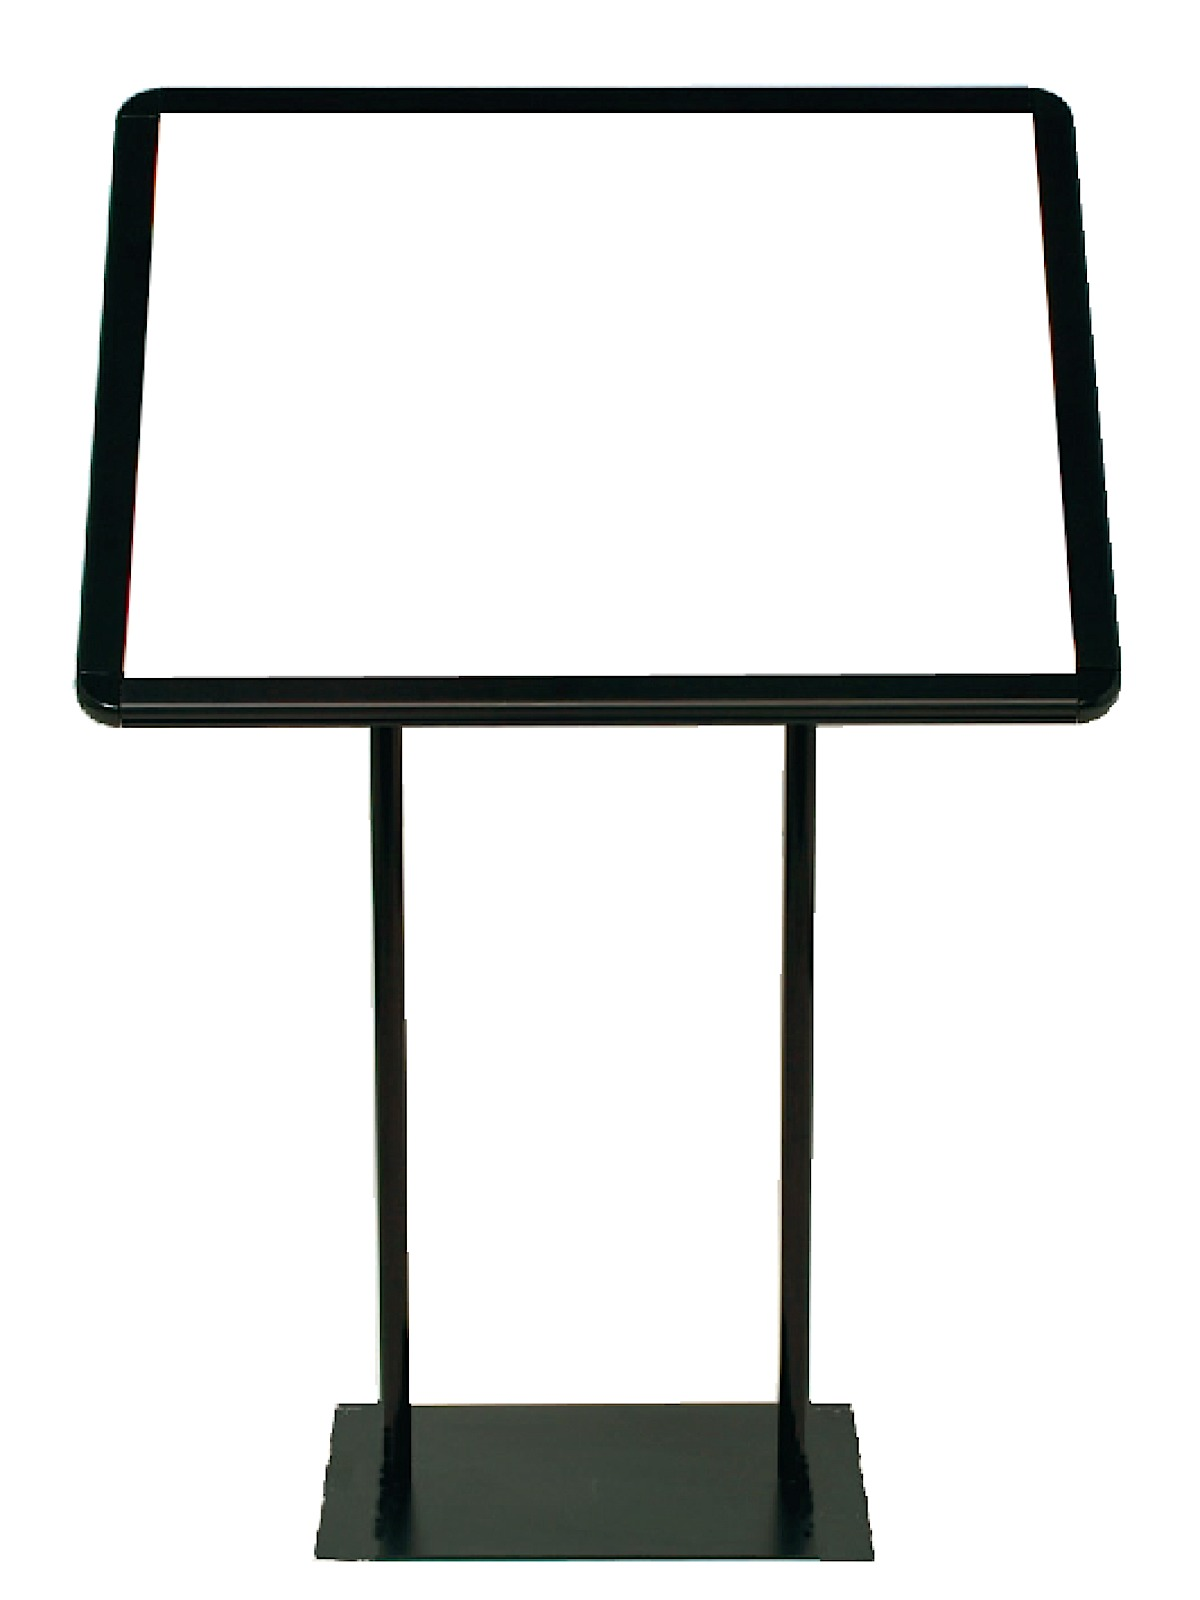 Easy-Open Angled Snapframe Pedestal Sign Stands